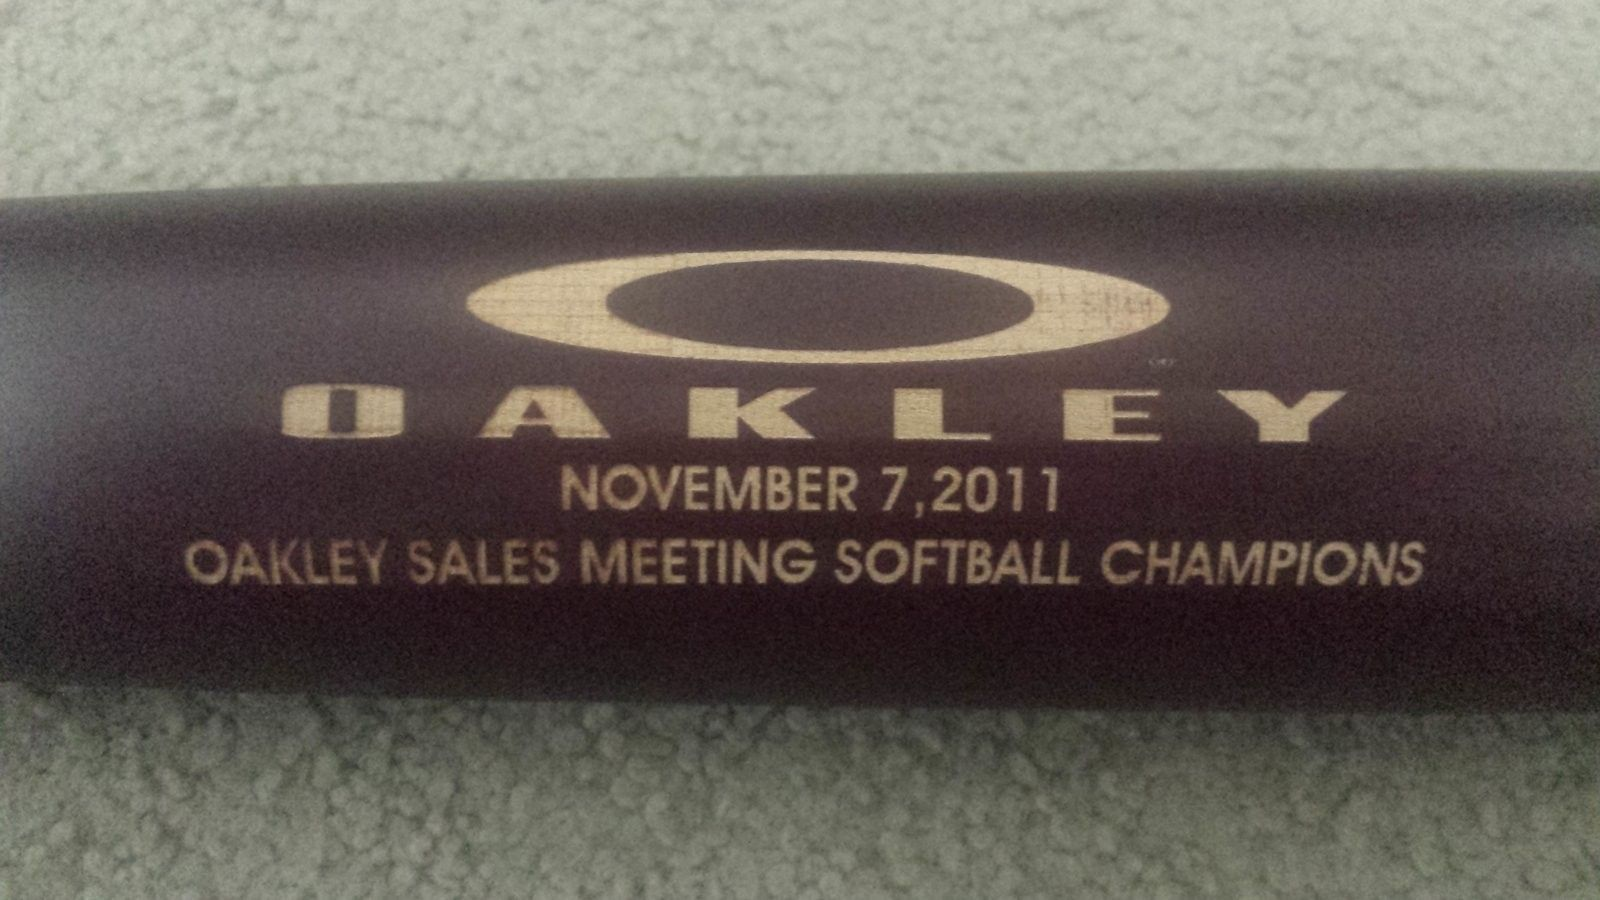 Oakley Baseball Bat - 20160602_114117.jpg